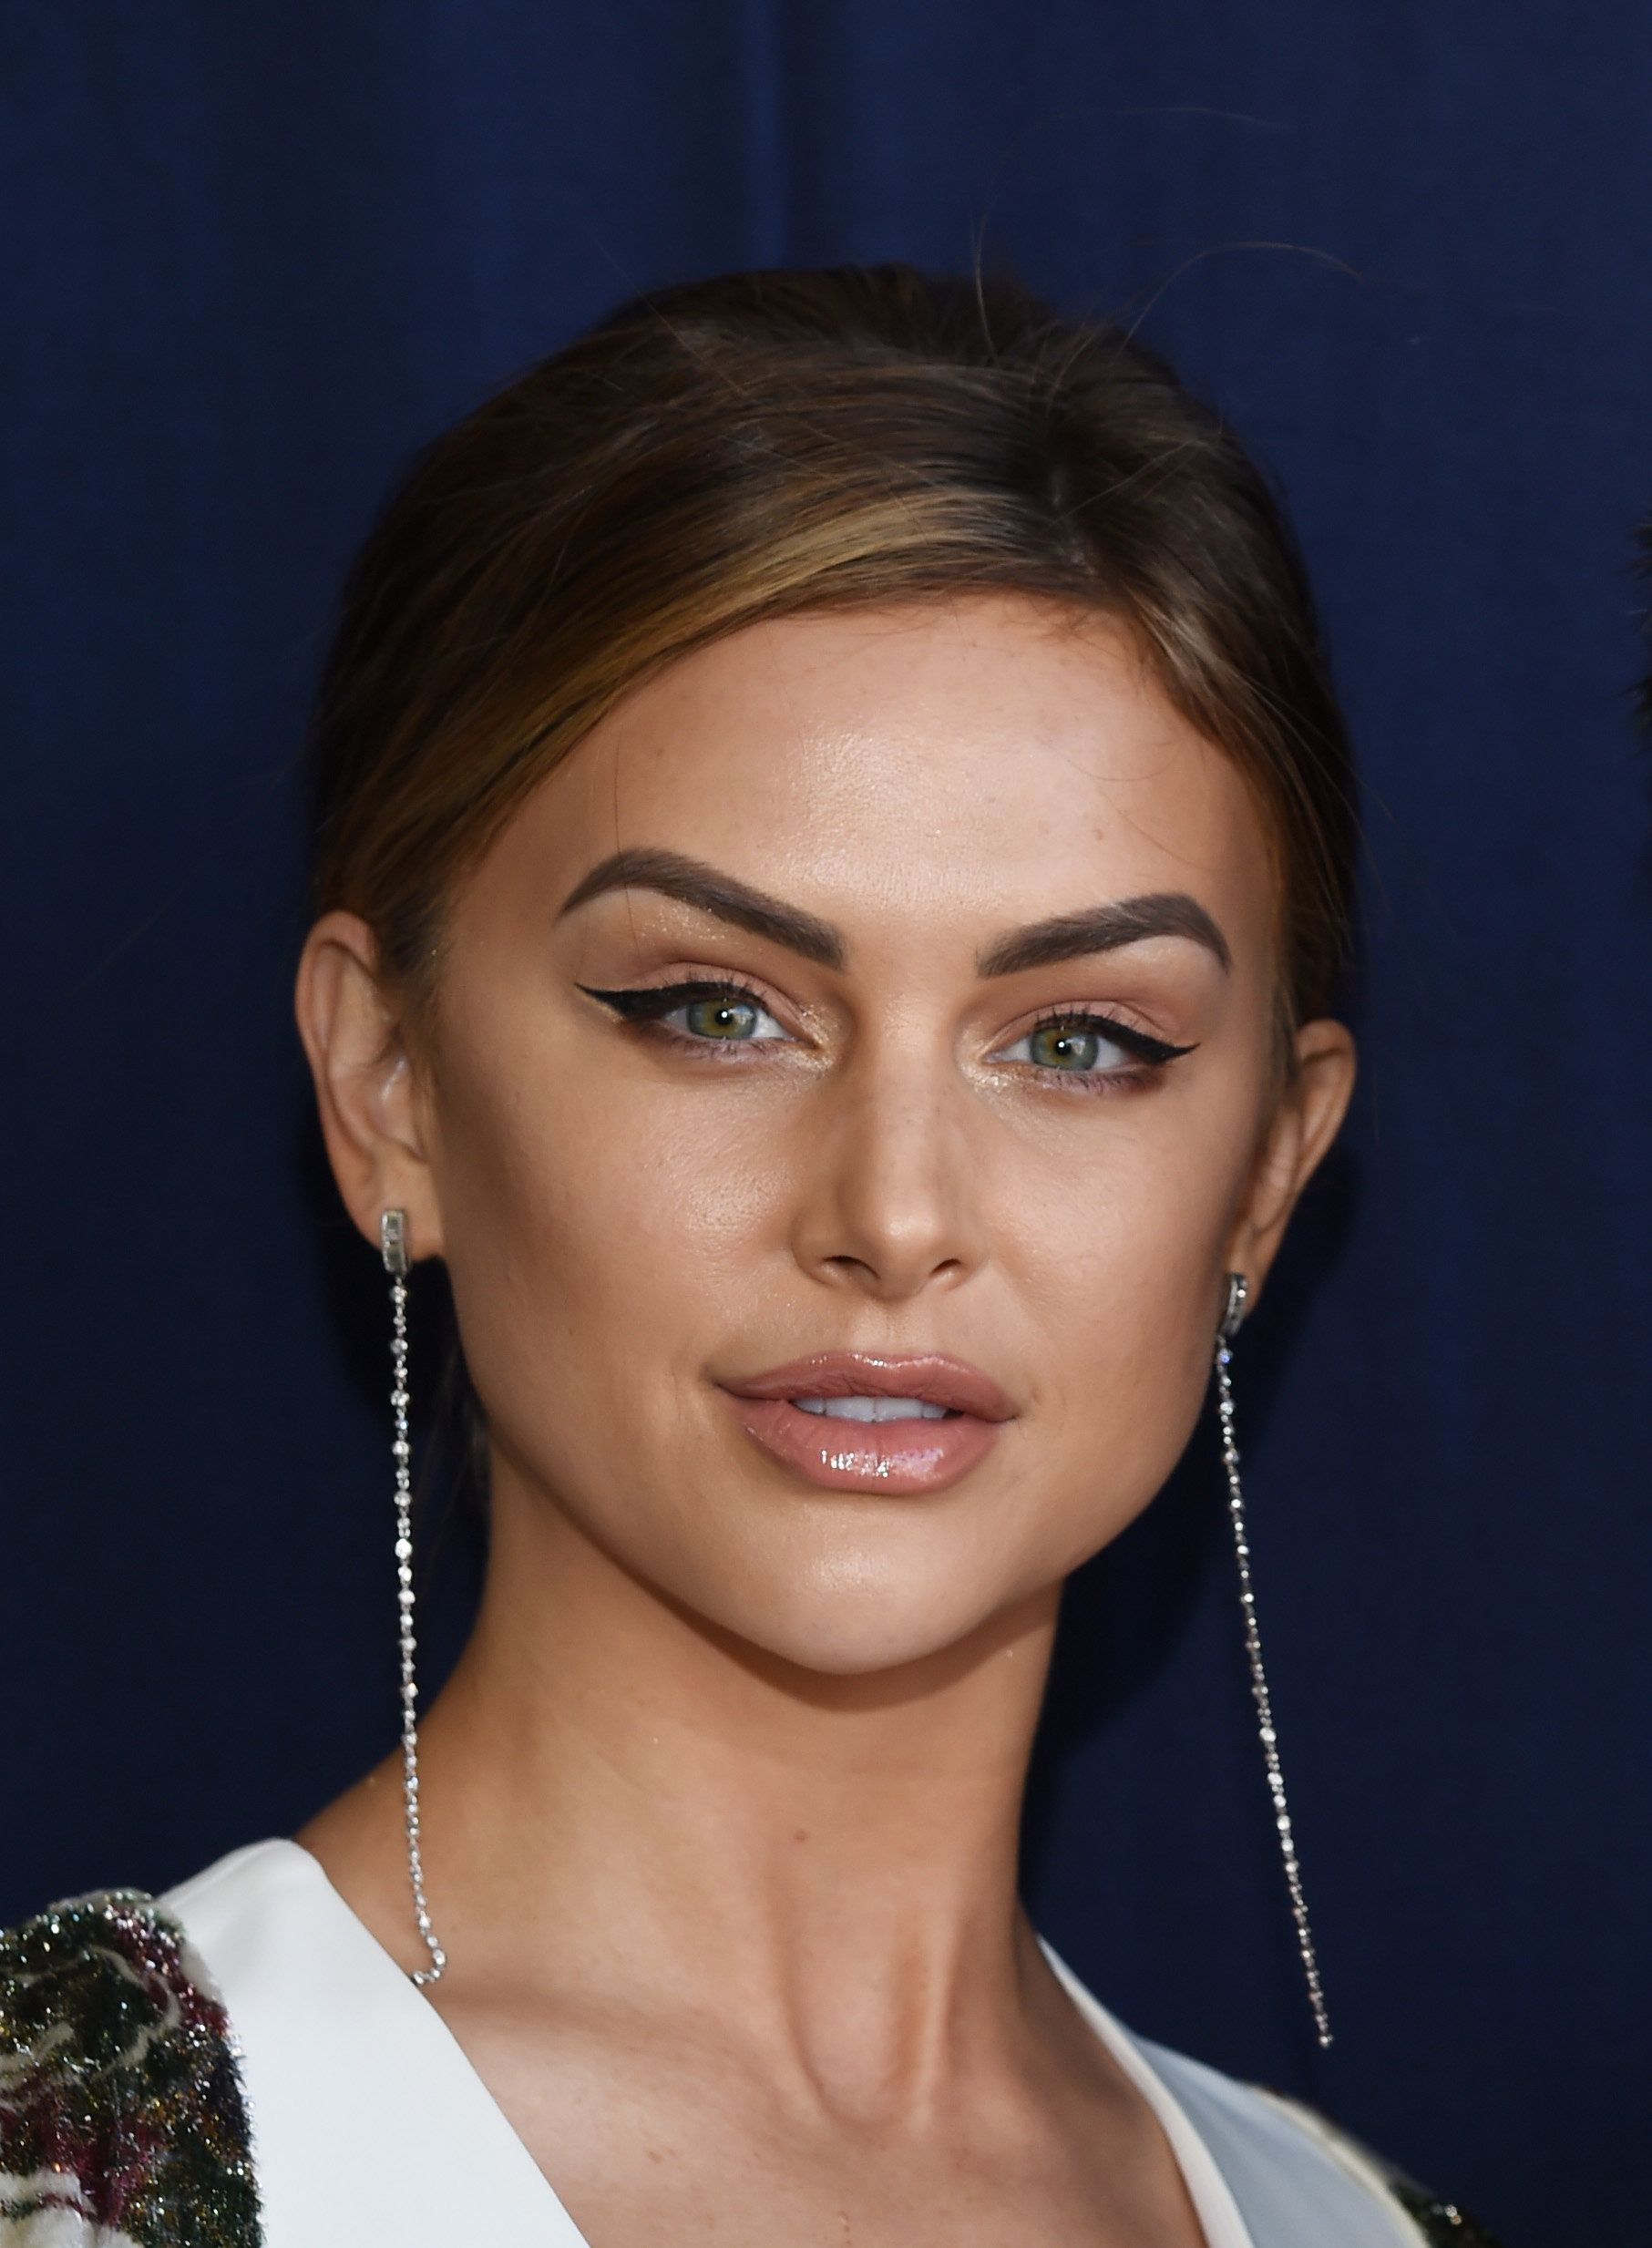 SANTA MONICA, CALIFORNIA - FEBRUARY 23: Lala Kent attends the 2019 Film Independent Spirit Awards on February 23, 2019 in Santa Monica, California. (Photo by Amanda Edwards/Getty Images)